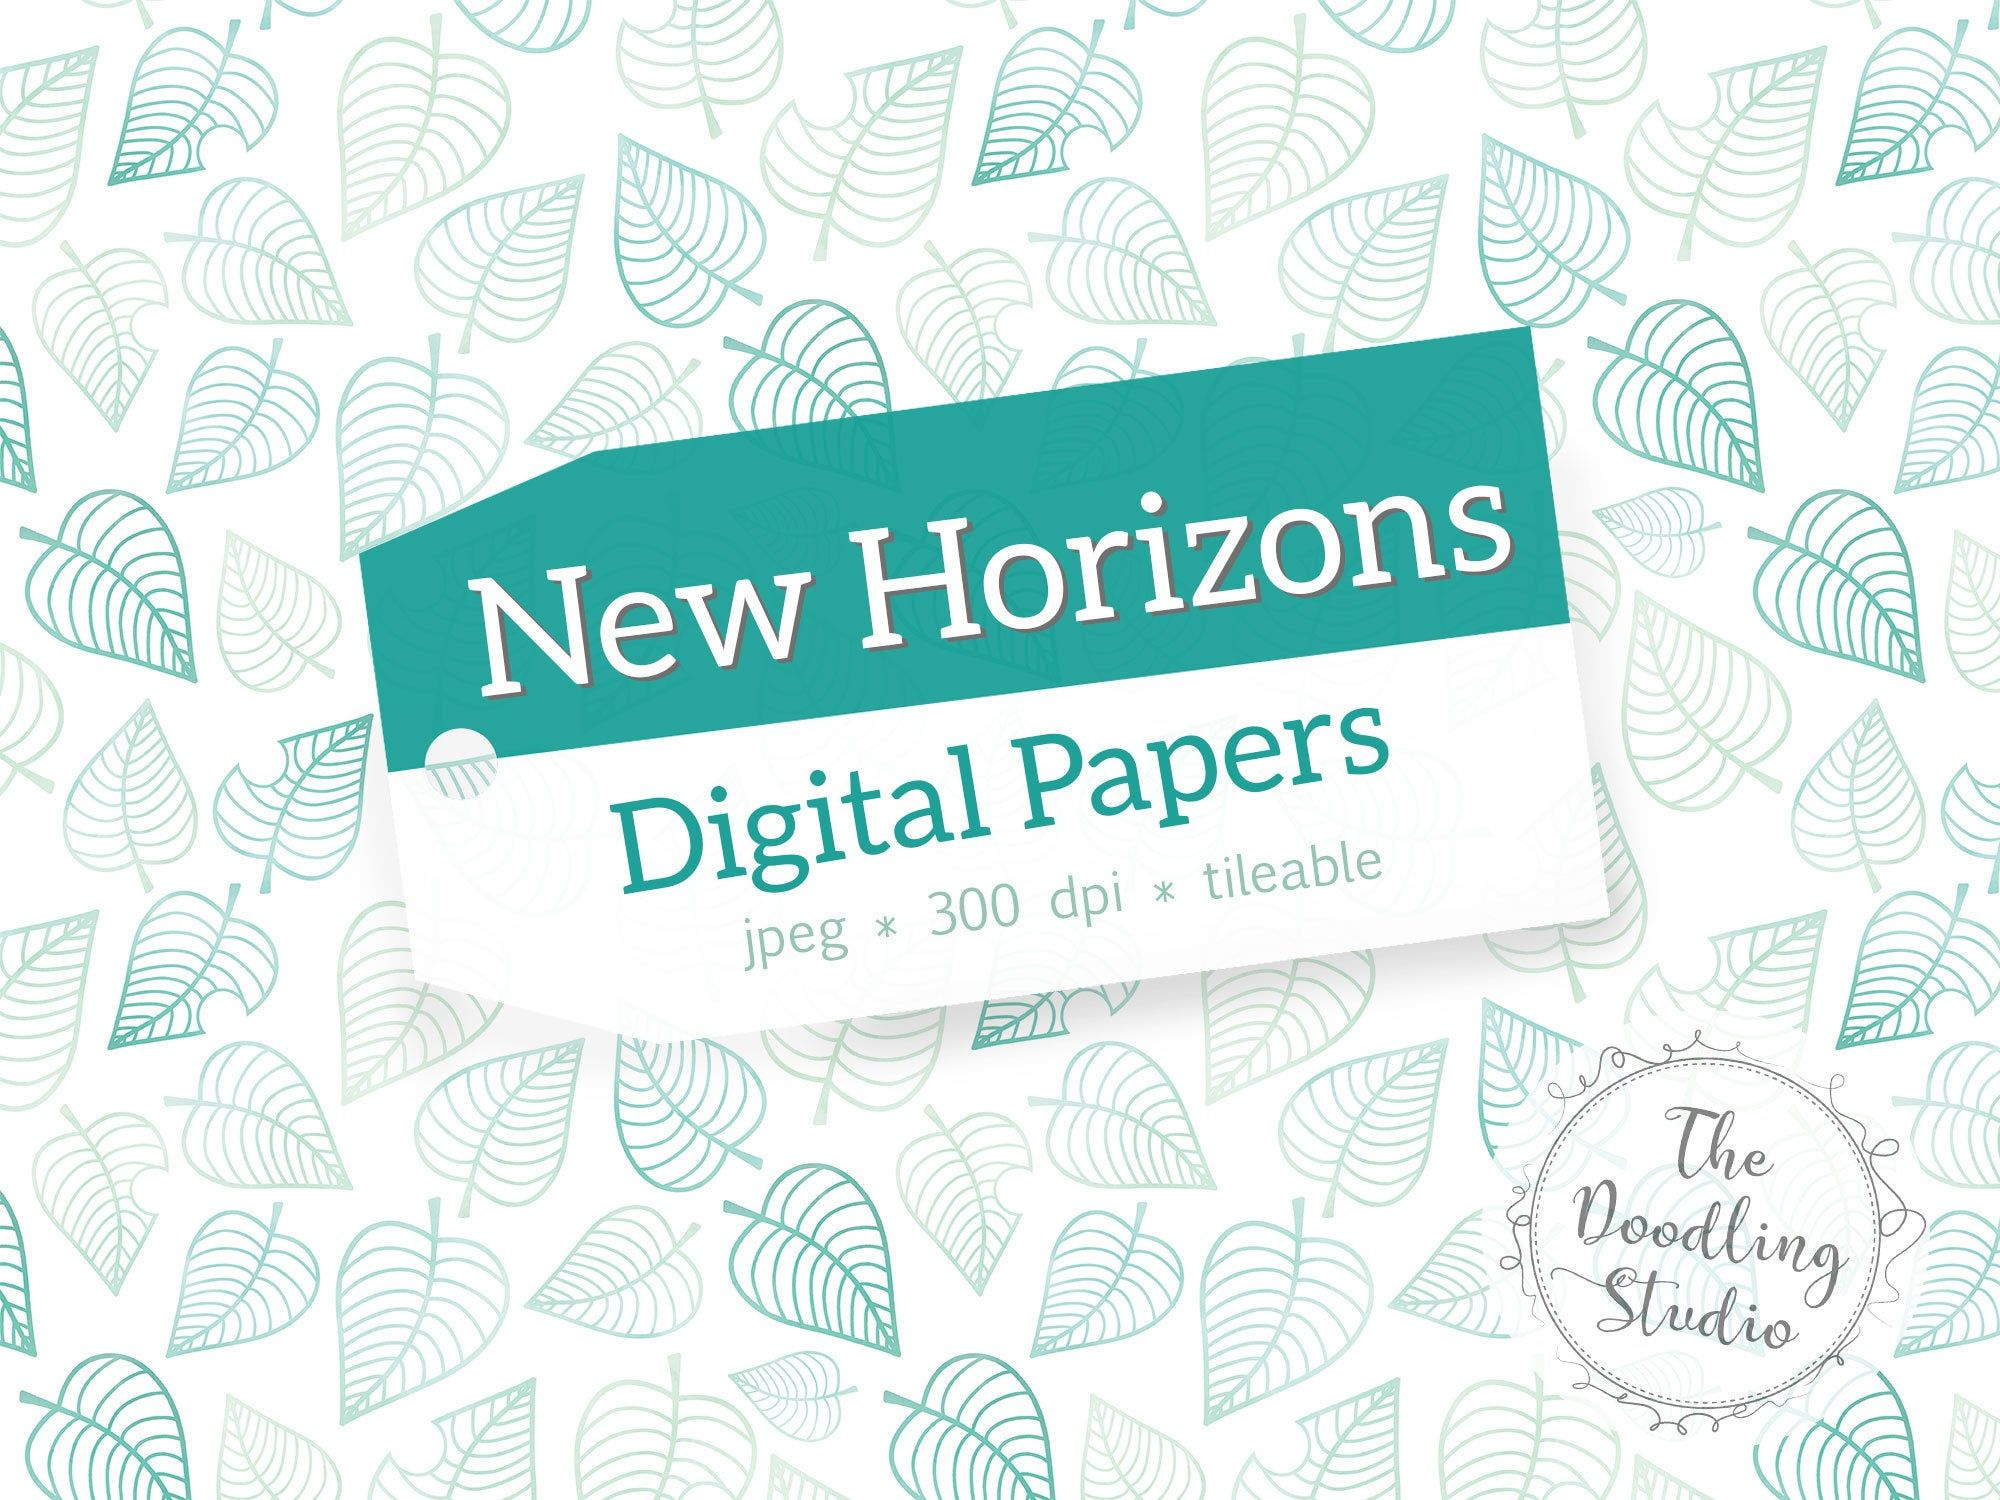 Animal Crossing New Horizons Digital Papers 12 Tileable Patterns